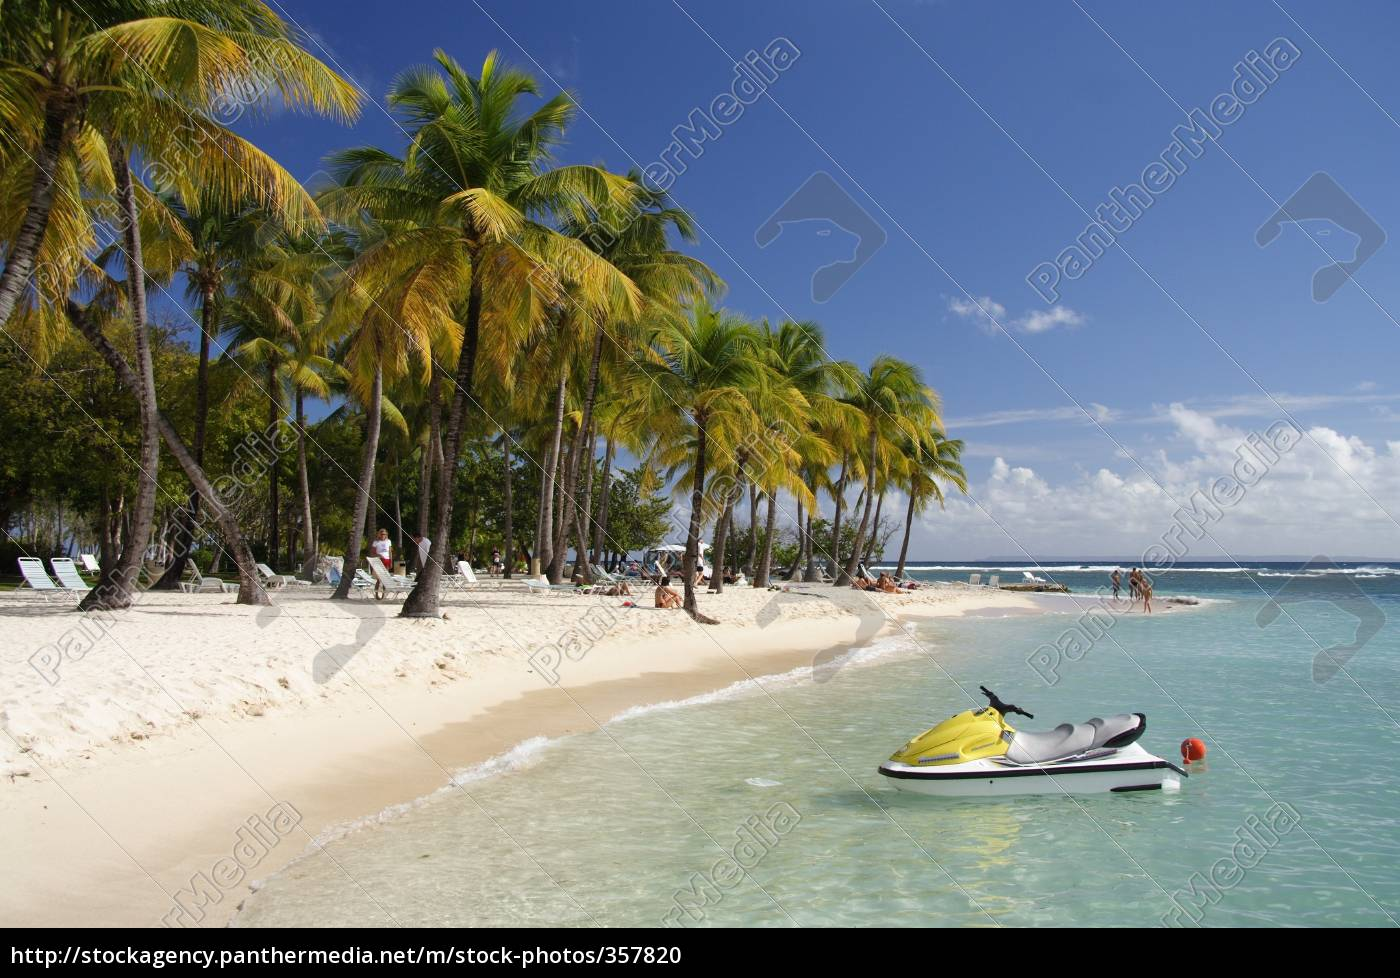 caribbean, watersports - 357820